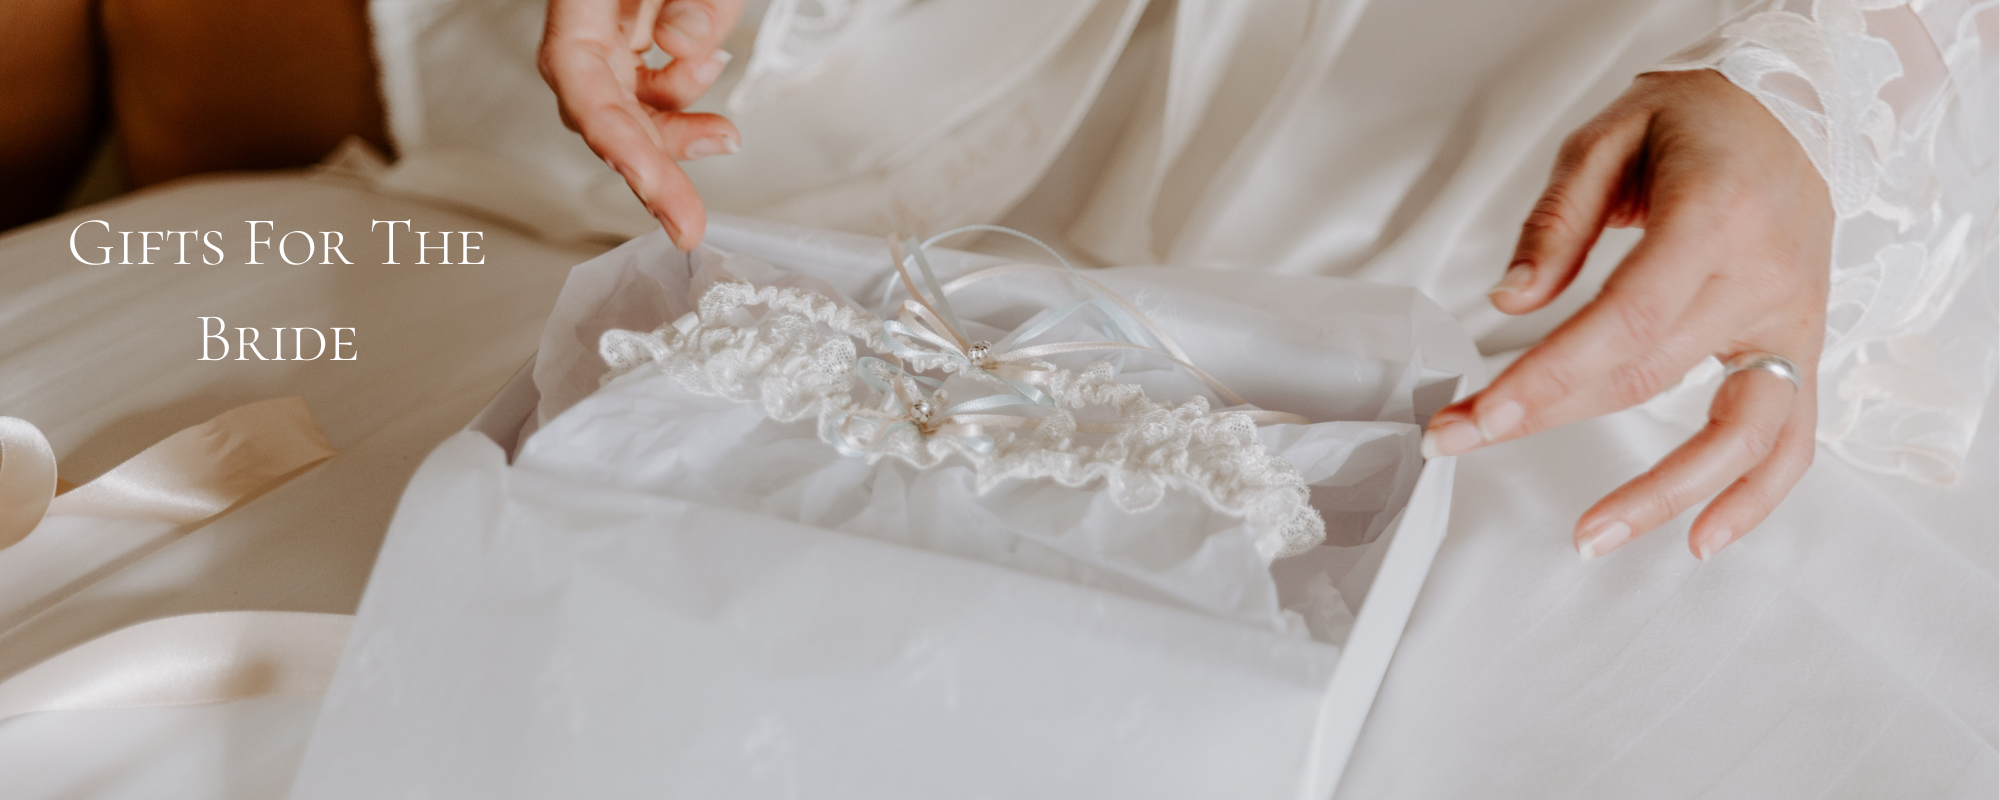 shop gifts for the bride